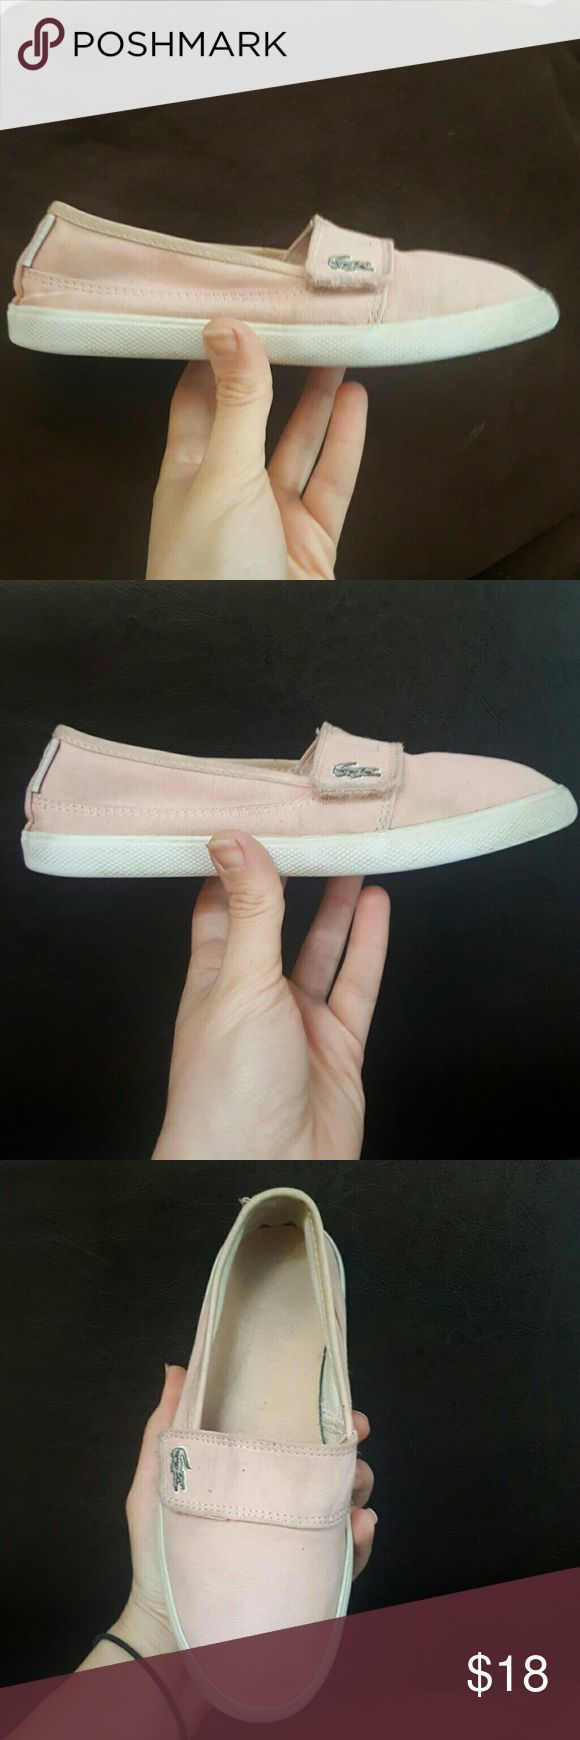 SALE LACOSTE KIDS SIZE 2 GIRLS SNEAKERS VELCRO LACOSTE GUC  The cuttest little shoes!  Light pink amazing slip on sneakers Uk 1 eur 33 usa 2 Maurice Lacoste Shoes Sneakers